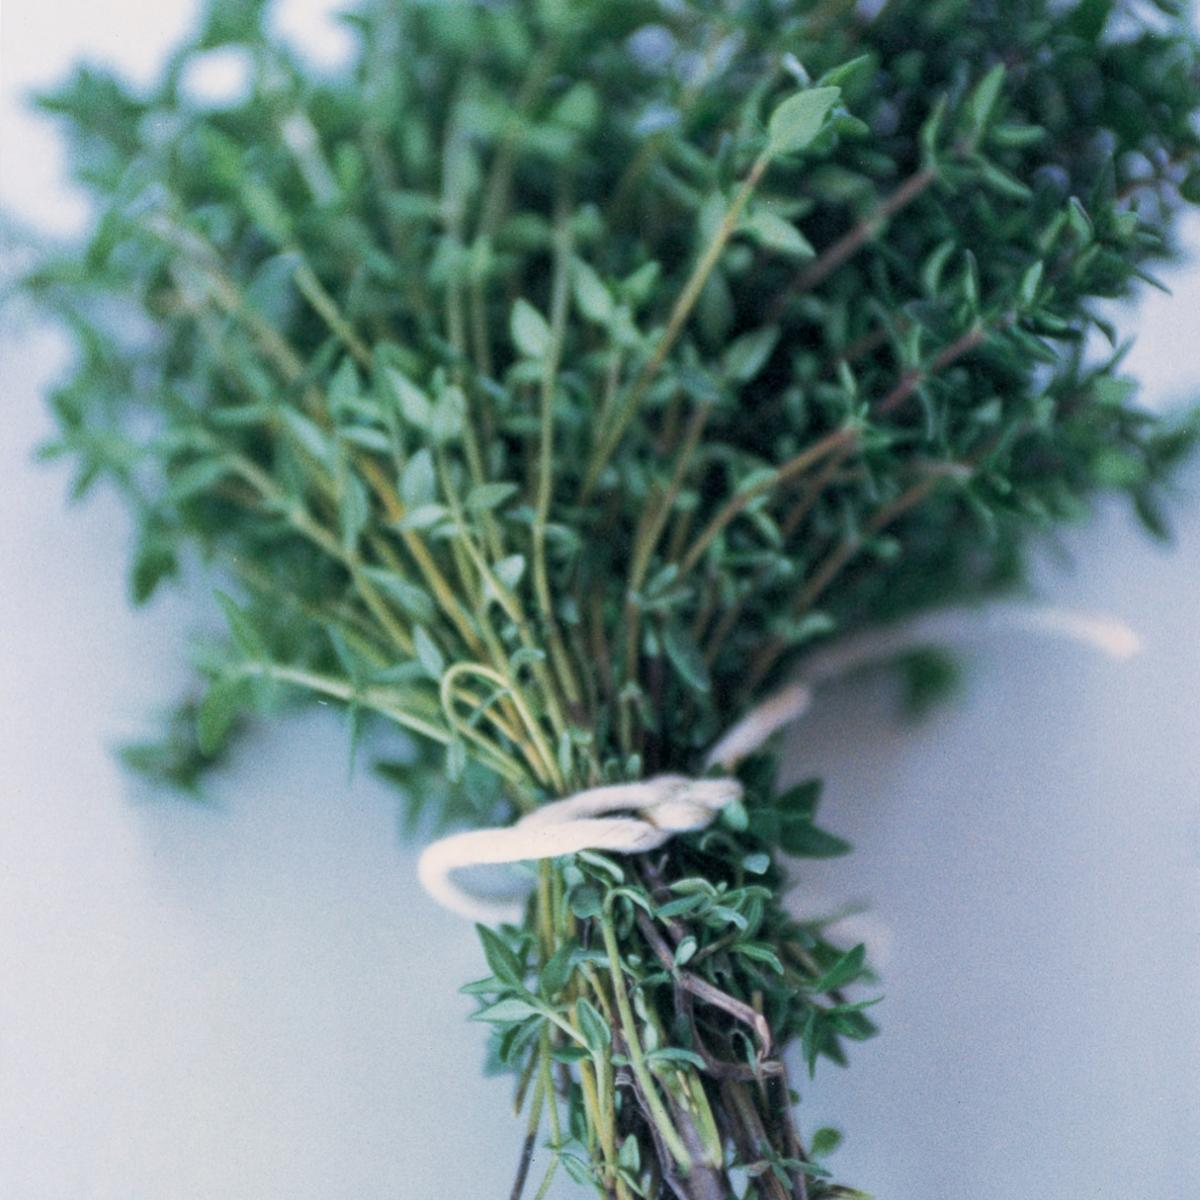 Ingredient soup fresh thyme